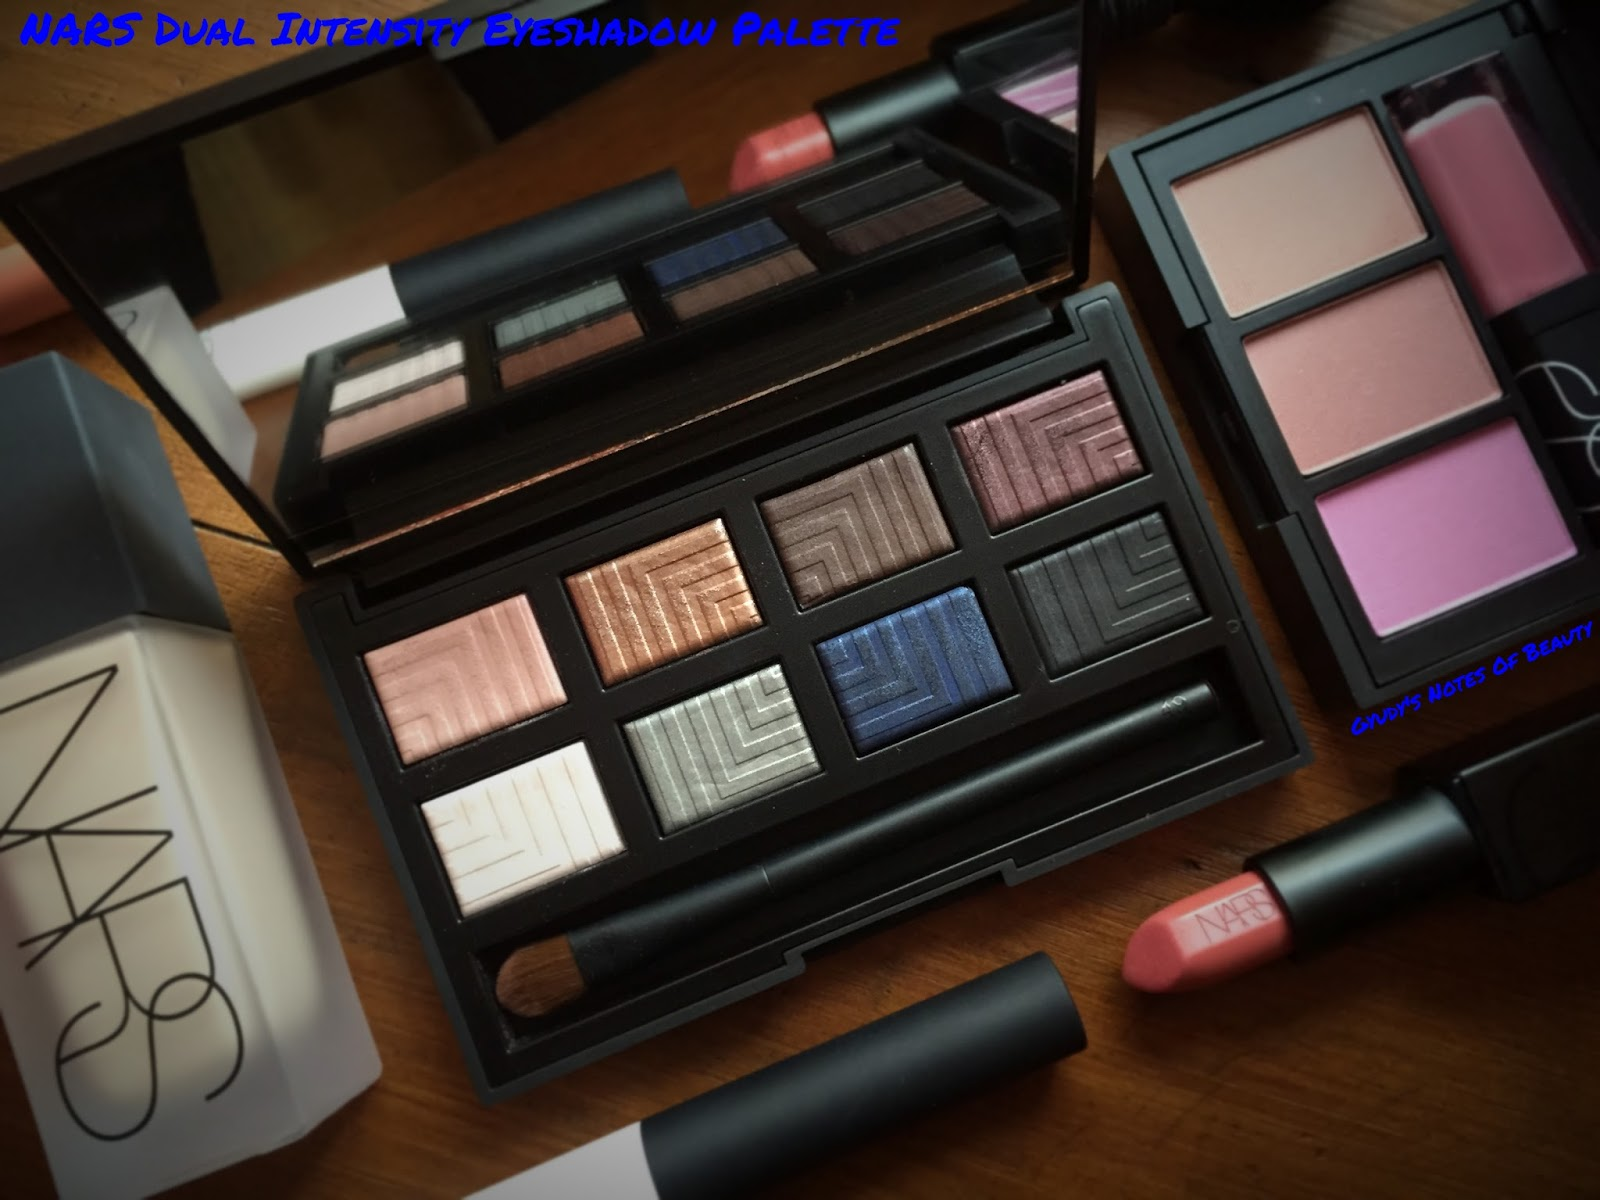 Nars Dual Intensity Eyeshadow Palette Review